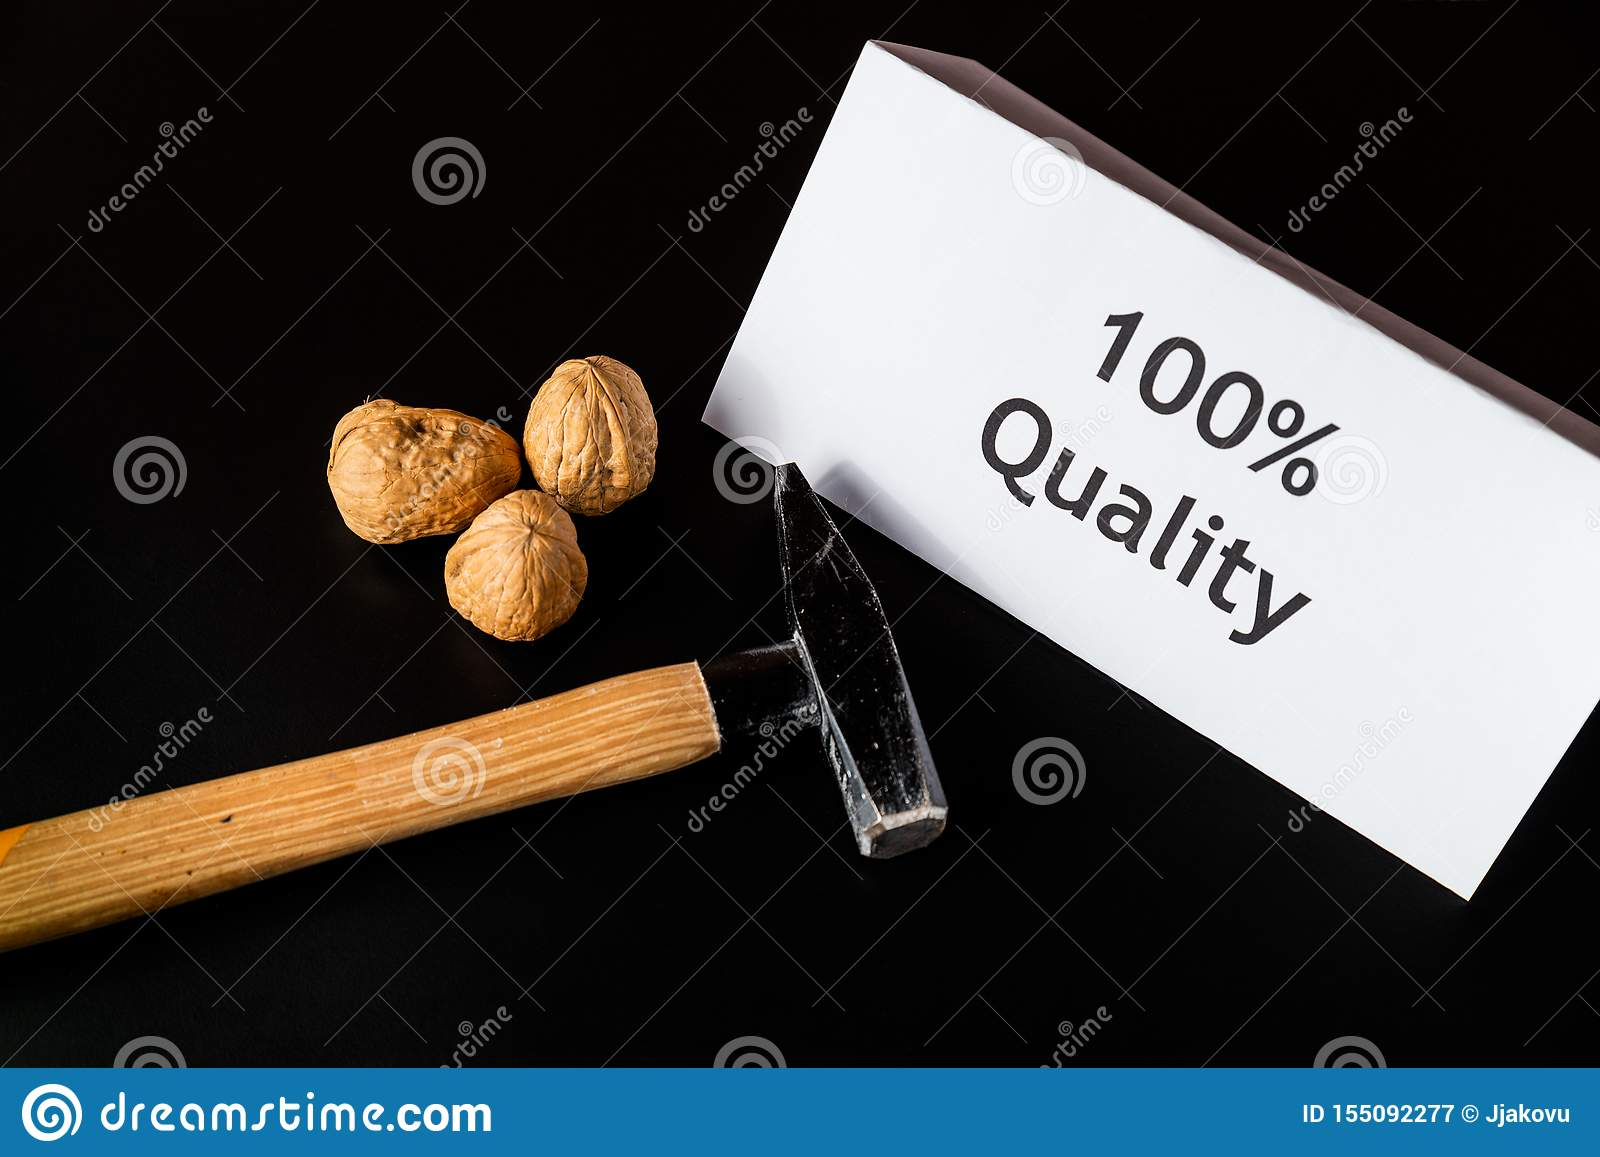 Hammer, three walnuts and paper/note `100  Quality` are on the black table/background. World Quality Day